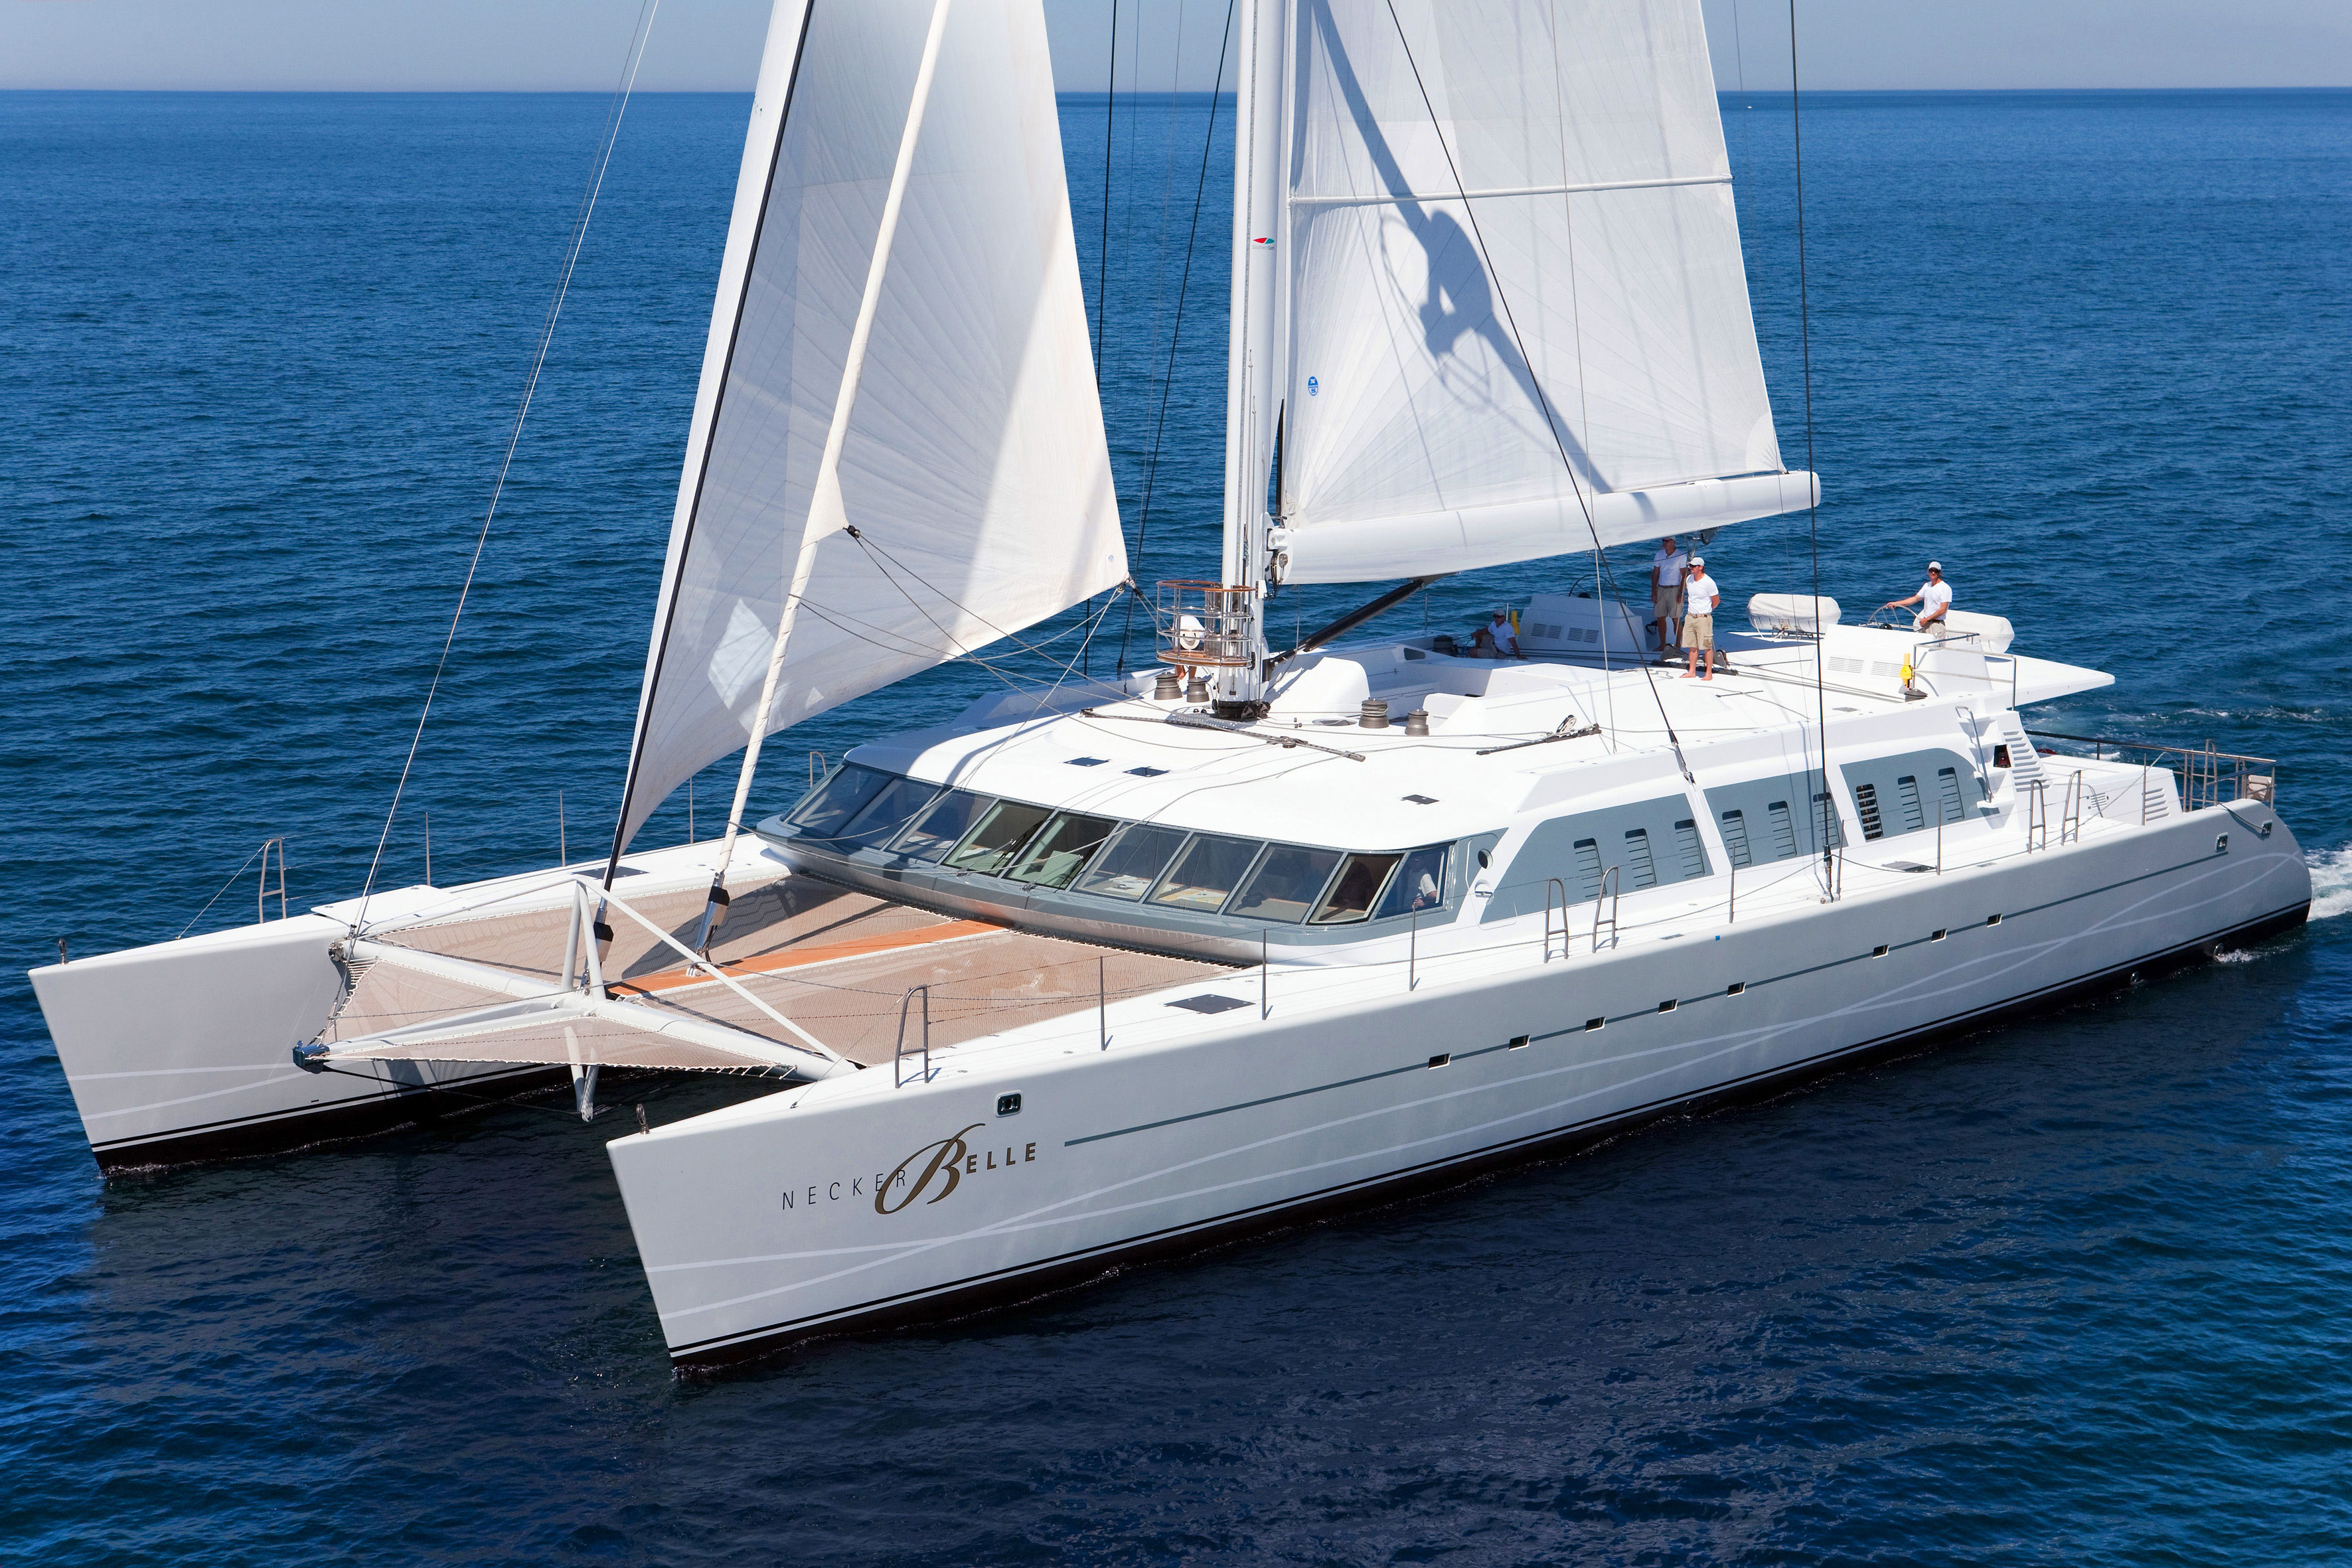 necker-belle-luxury-catamaran